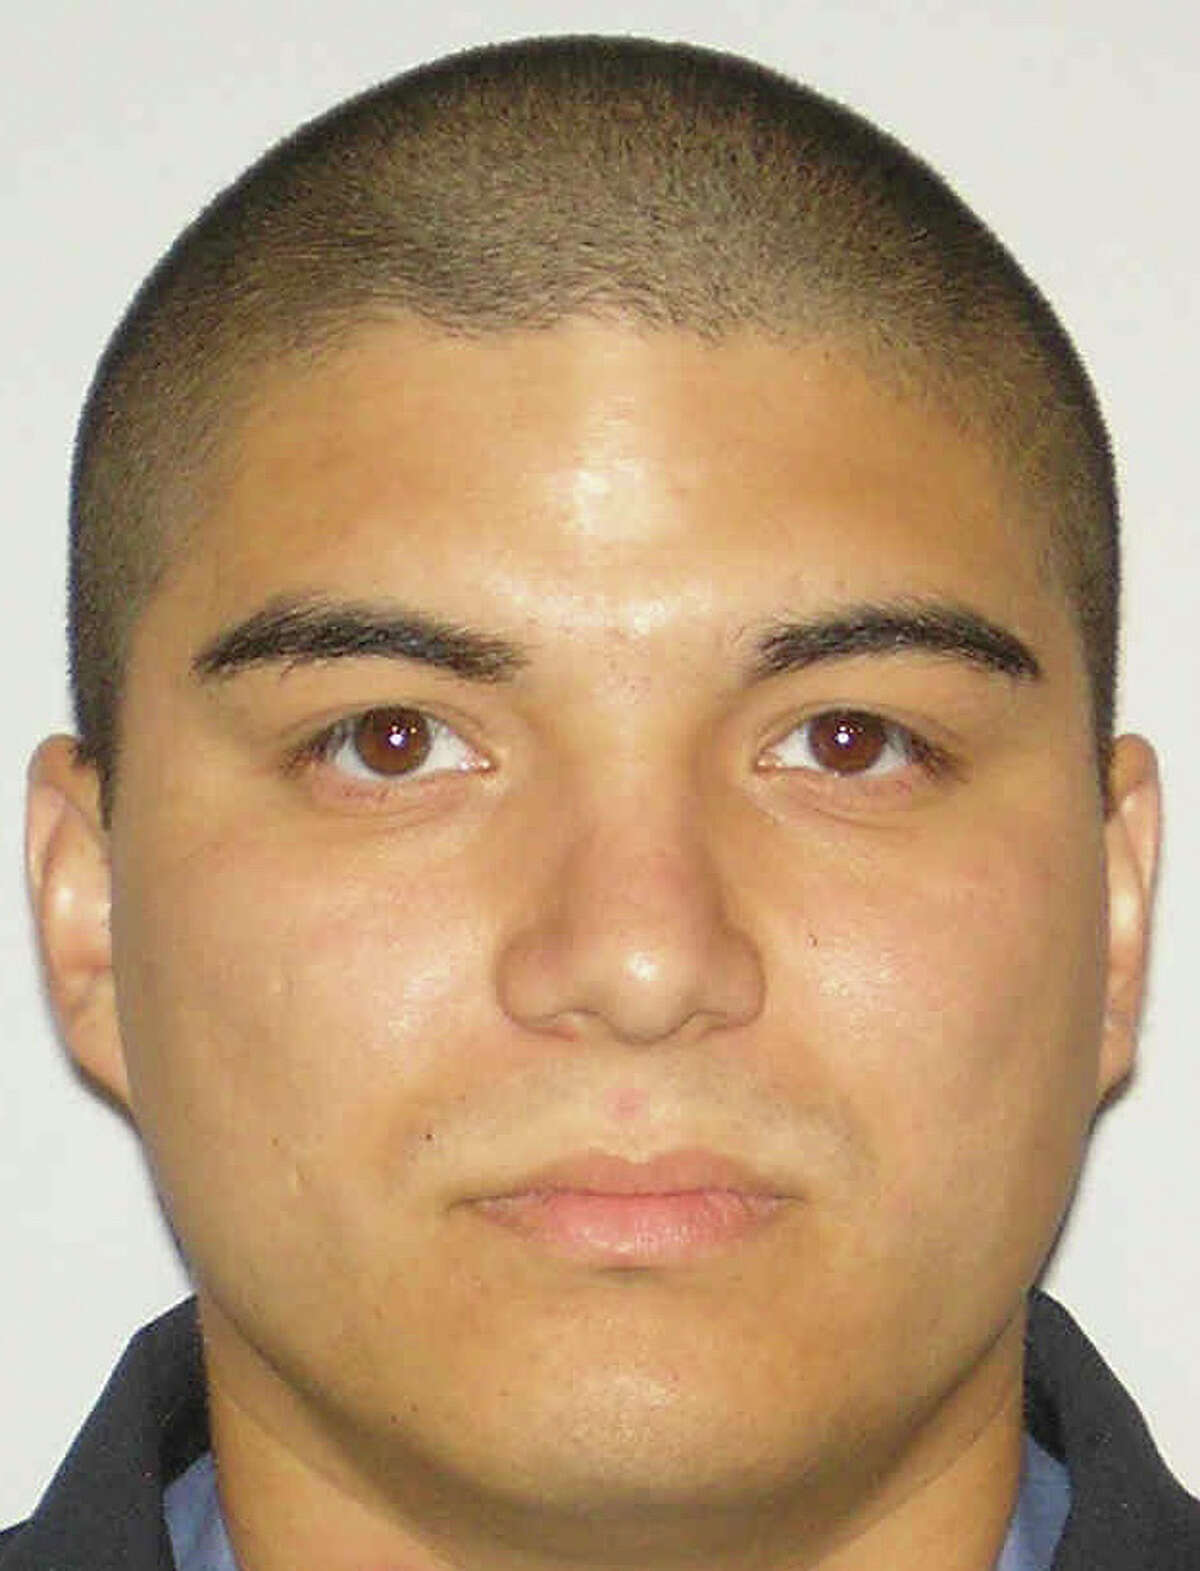 Officer David Nieto is a three-year veteran of the police force.